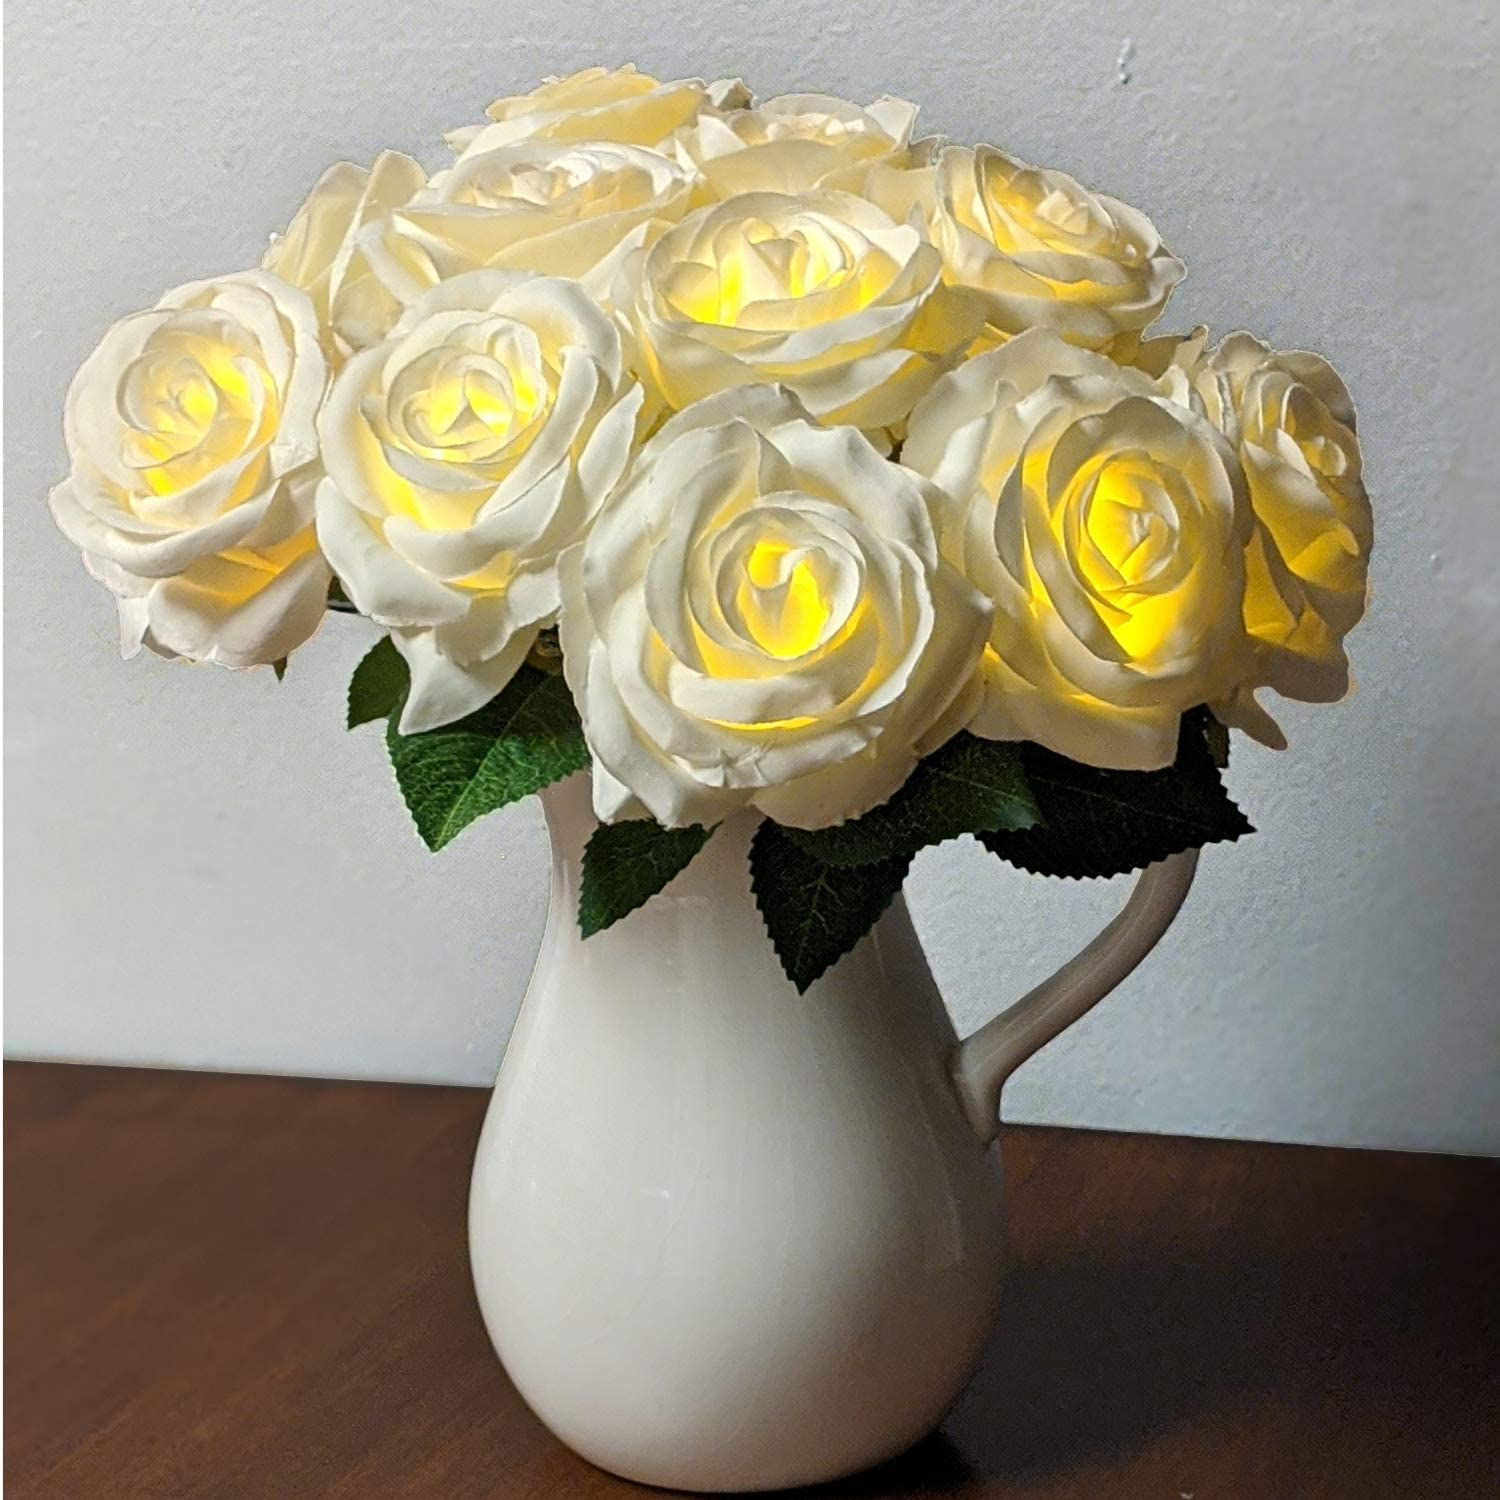 Orchid & Ivy 11 Stem Lighted Rose Bouquet, Artificial White Silk Flowers with LED Lights - Battery Operated with Timer - Beautiful for Home, Weddings,Table Centerpieces, Party Decor (White)